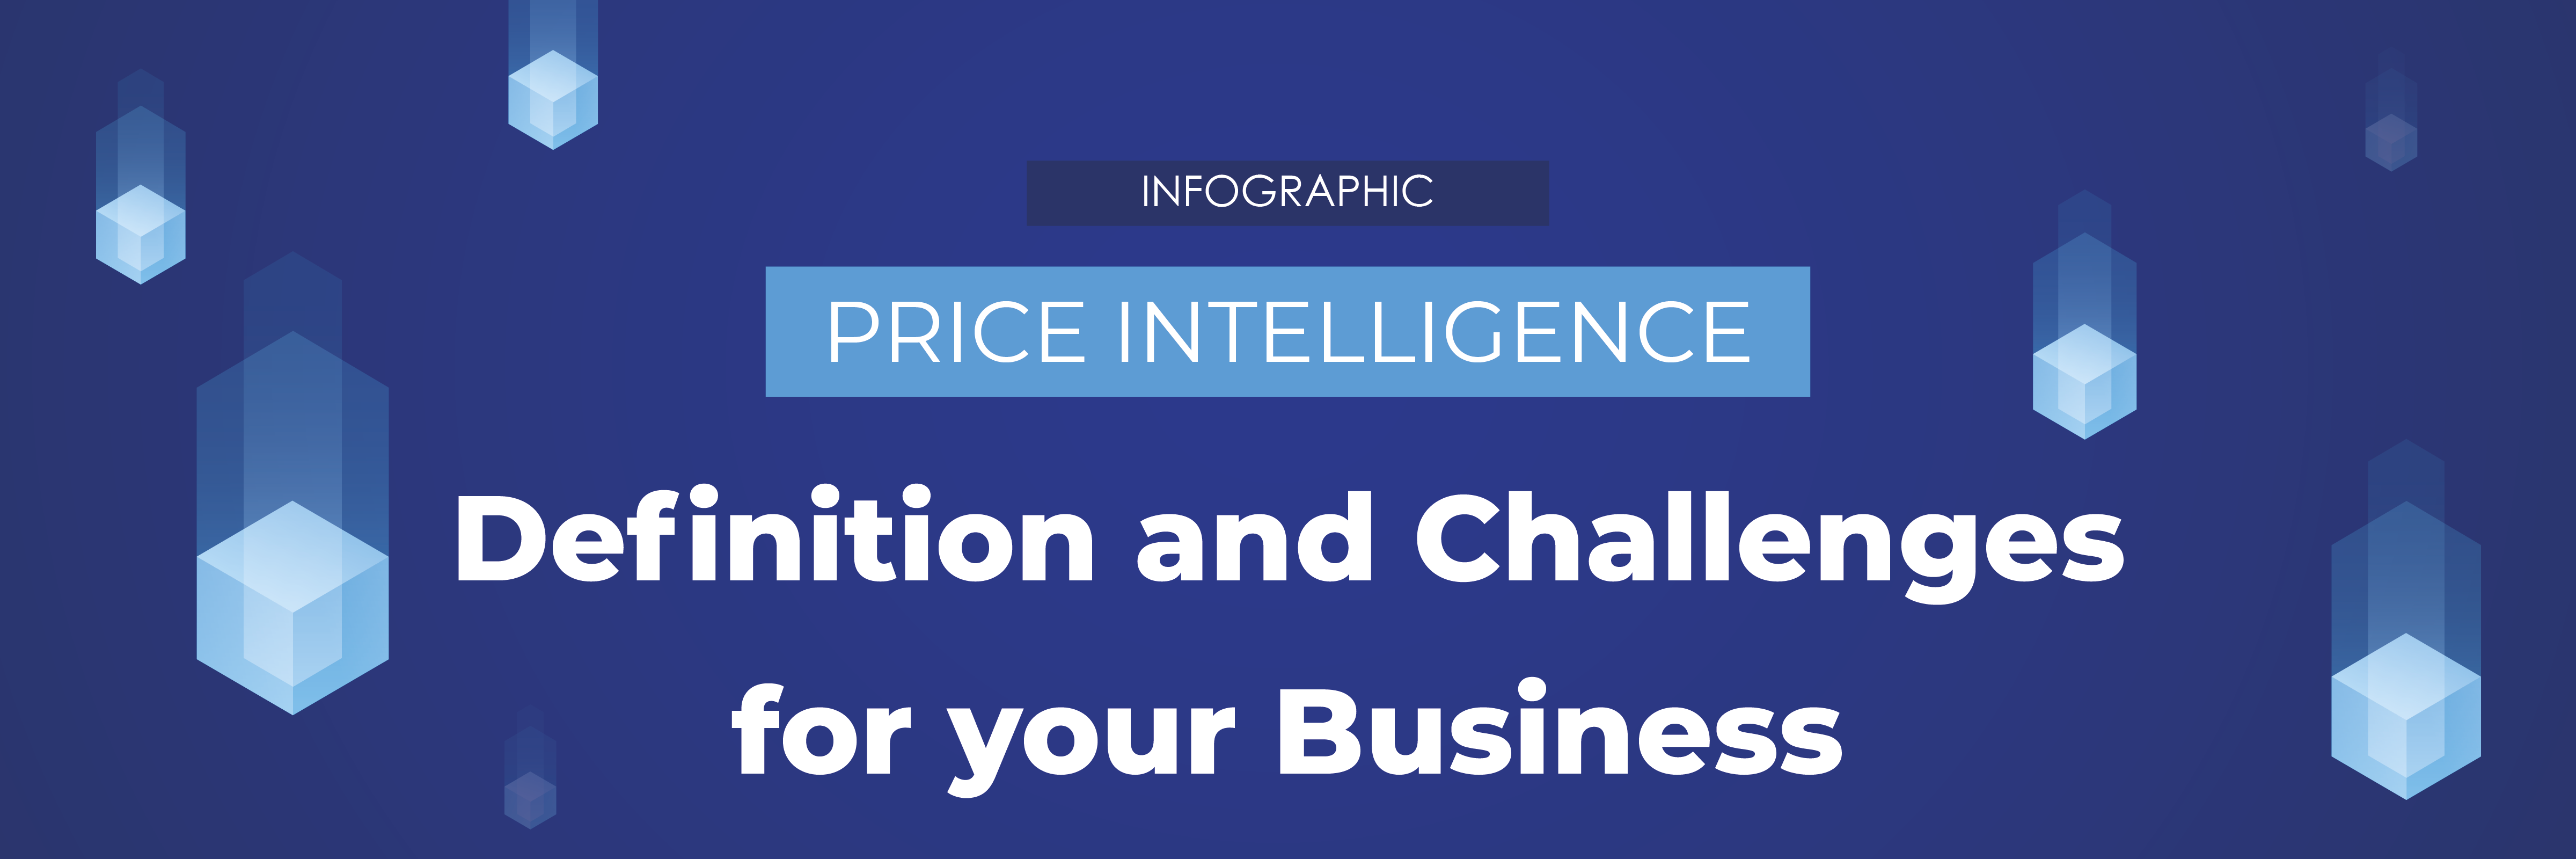 [Infographic] Price Intelligence: what business challenges?